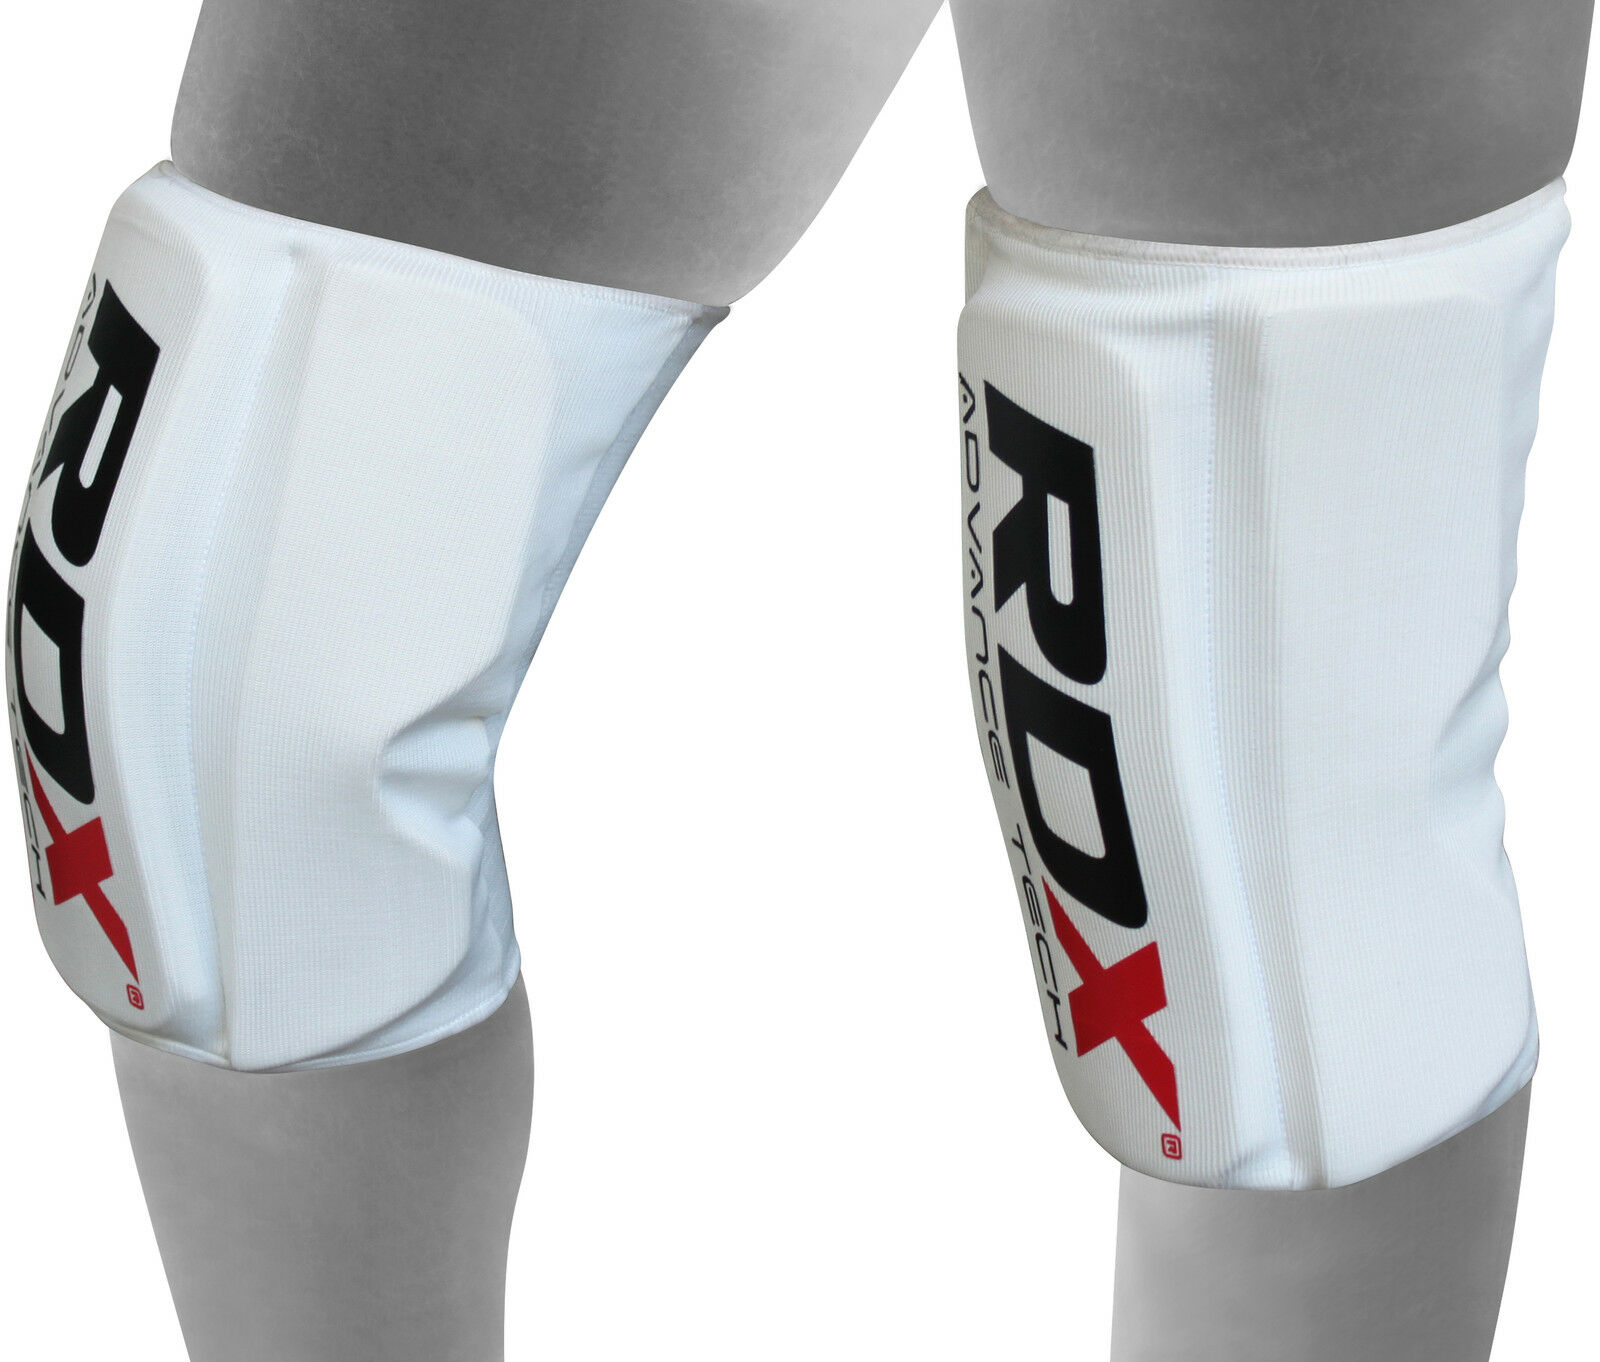 RDX Knee Caps Pads Protector Brace Guards Support Guards Brace Work Wear Guard MMA Padded T f9ea86